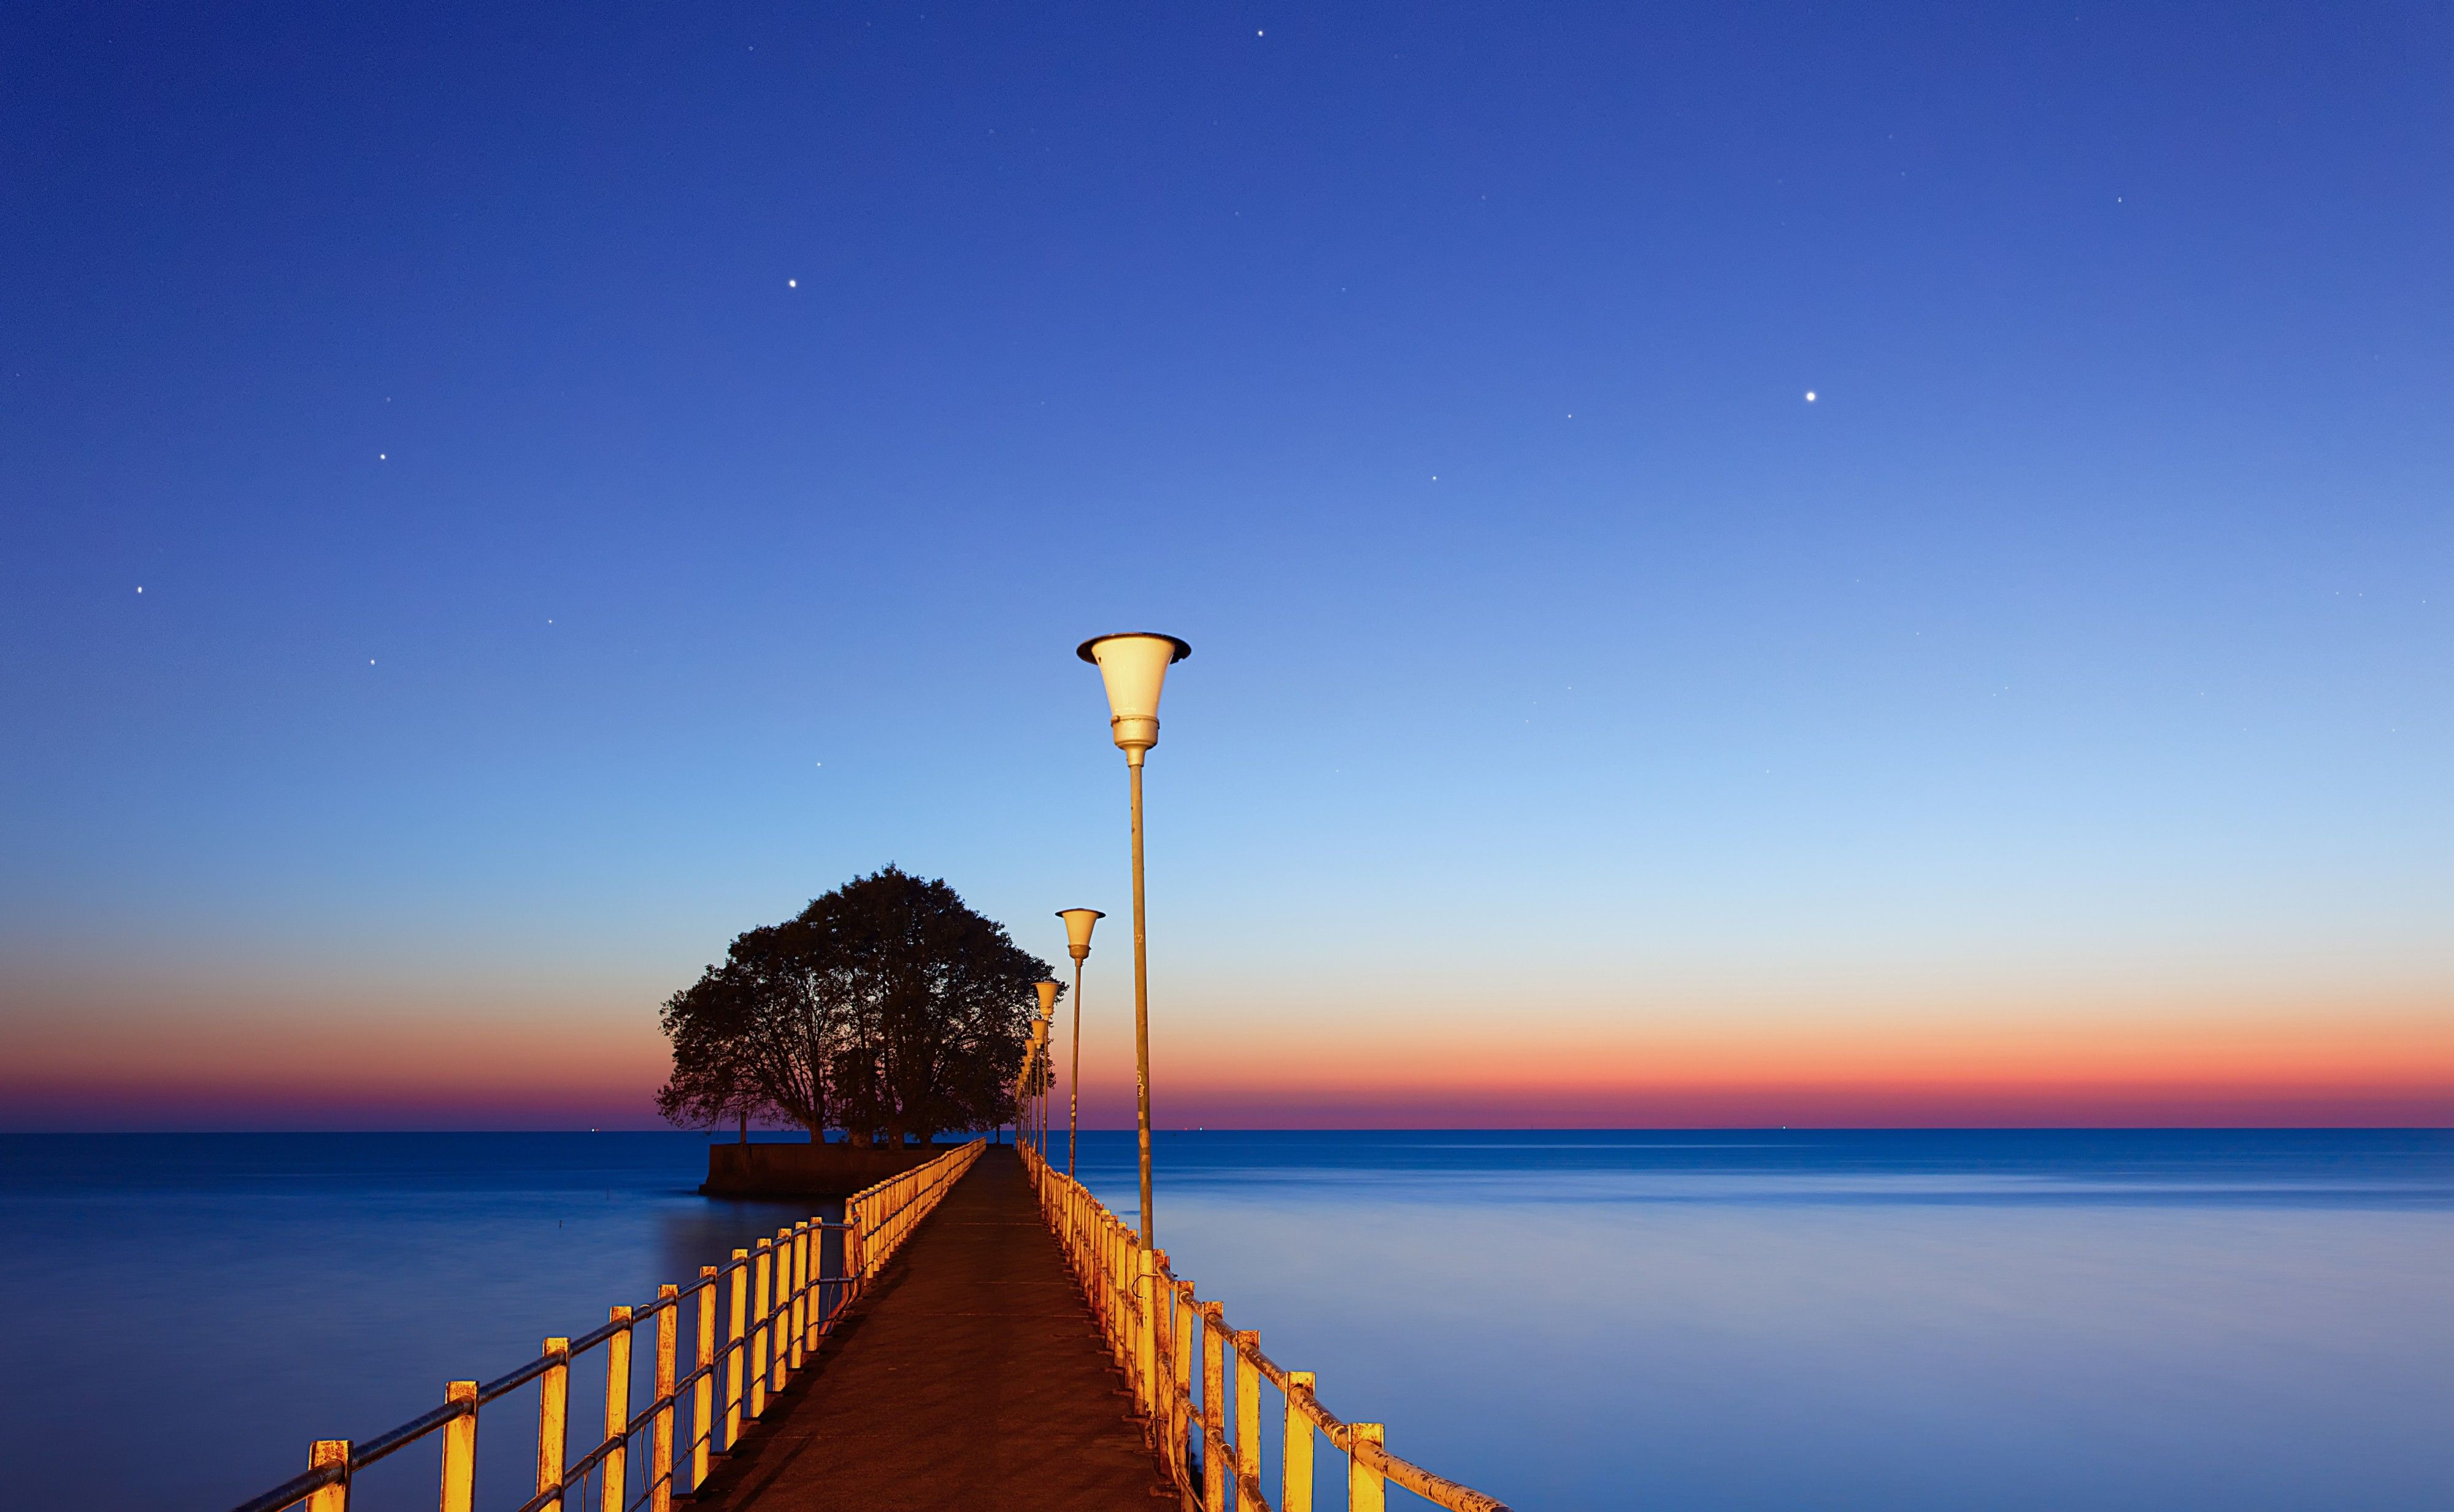 Beach At Night Wallpapers Top Free Beach At Night Backgrounds Wallpaperaccess